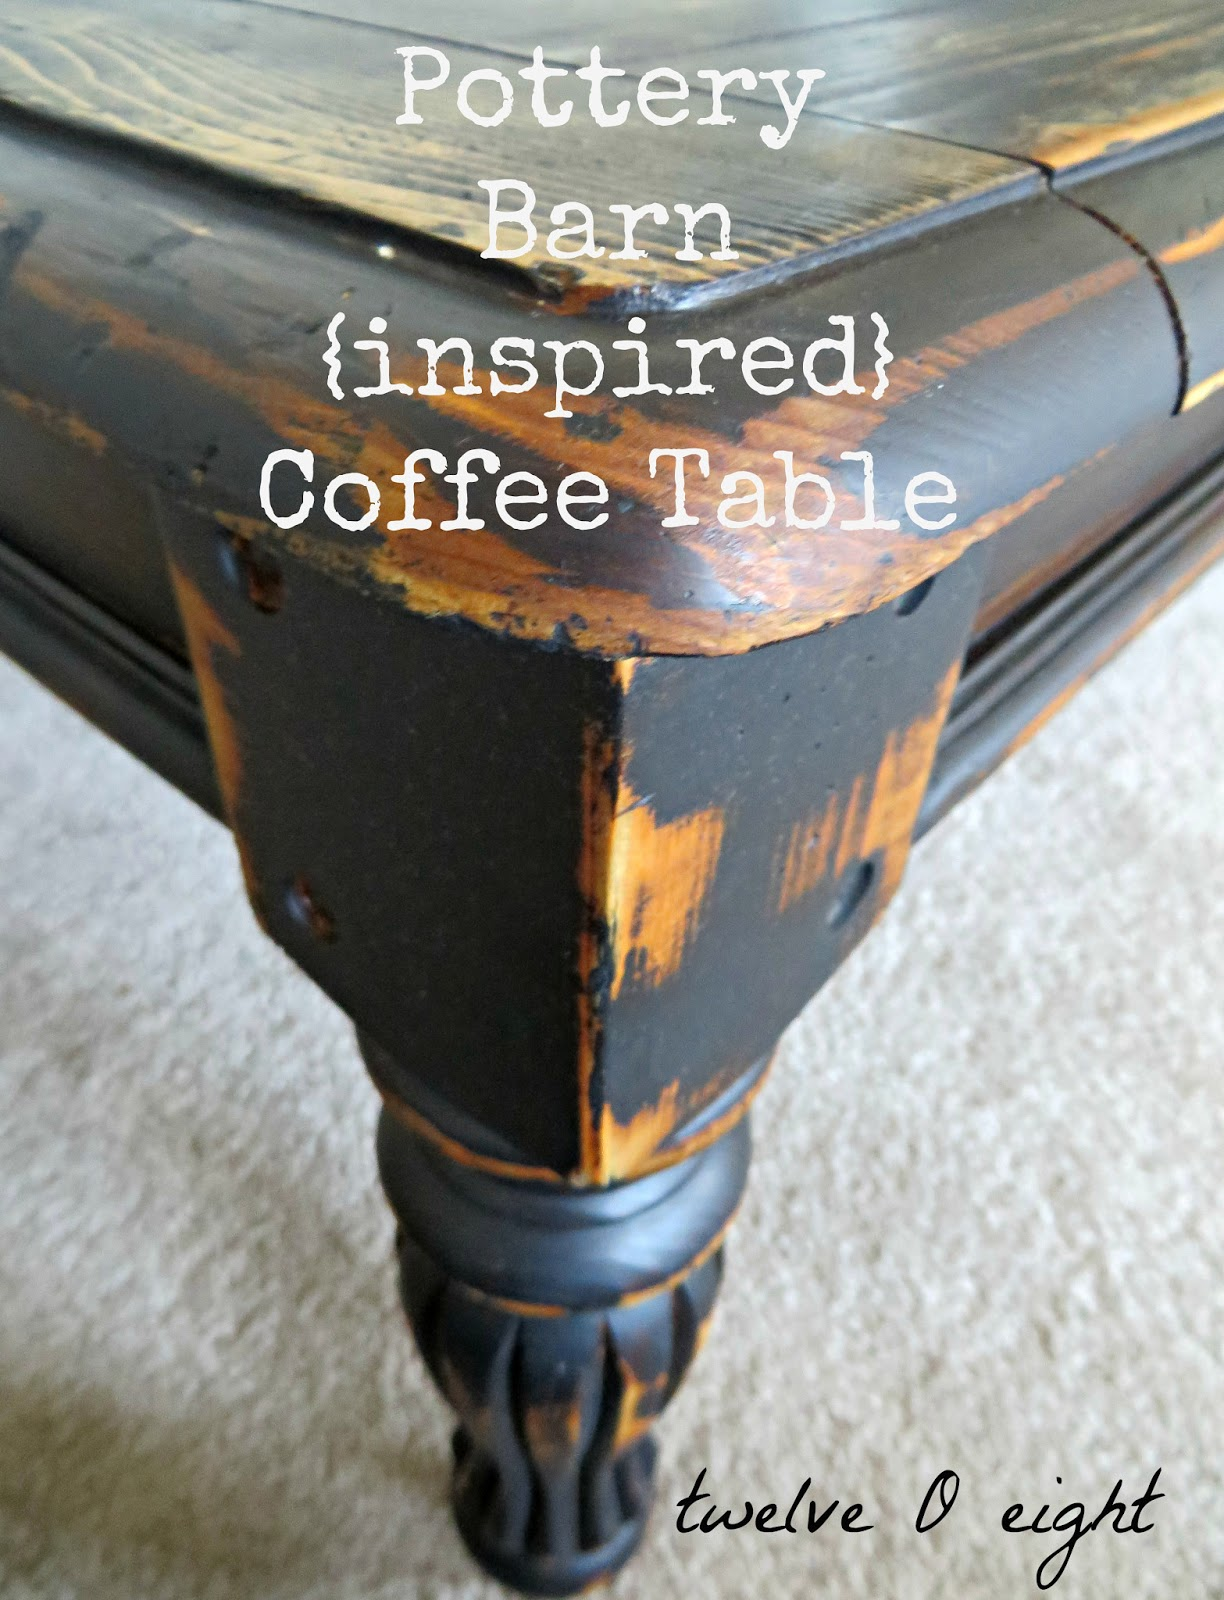 Pottery Barn Inspired Coffee Table twelveOeight